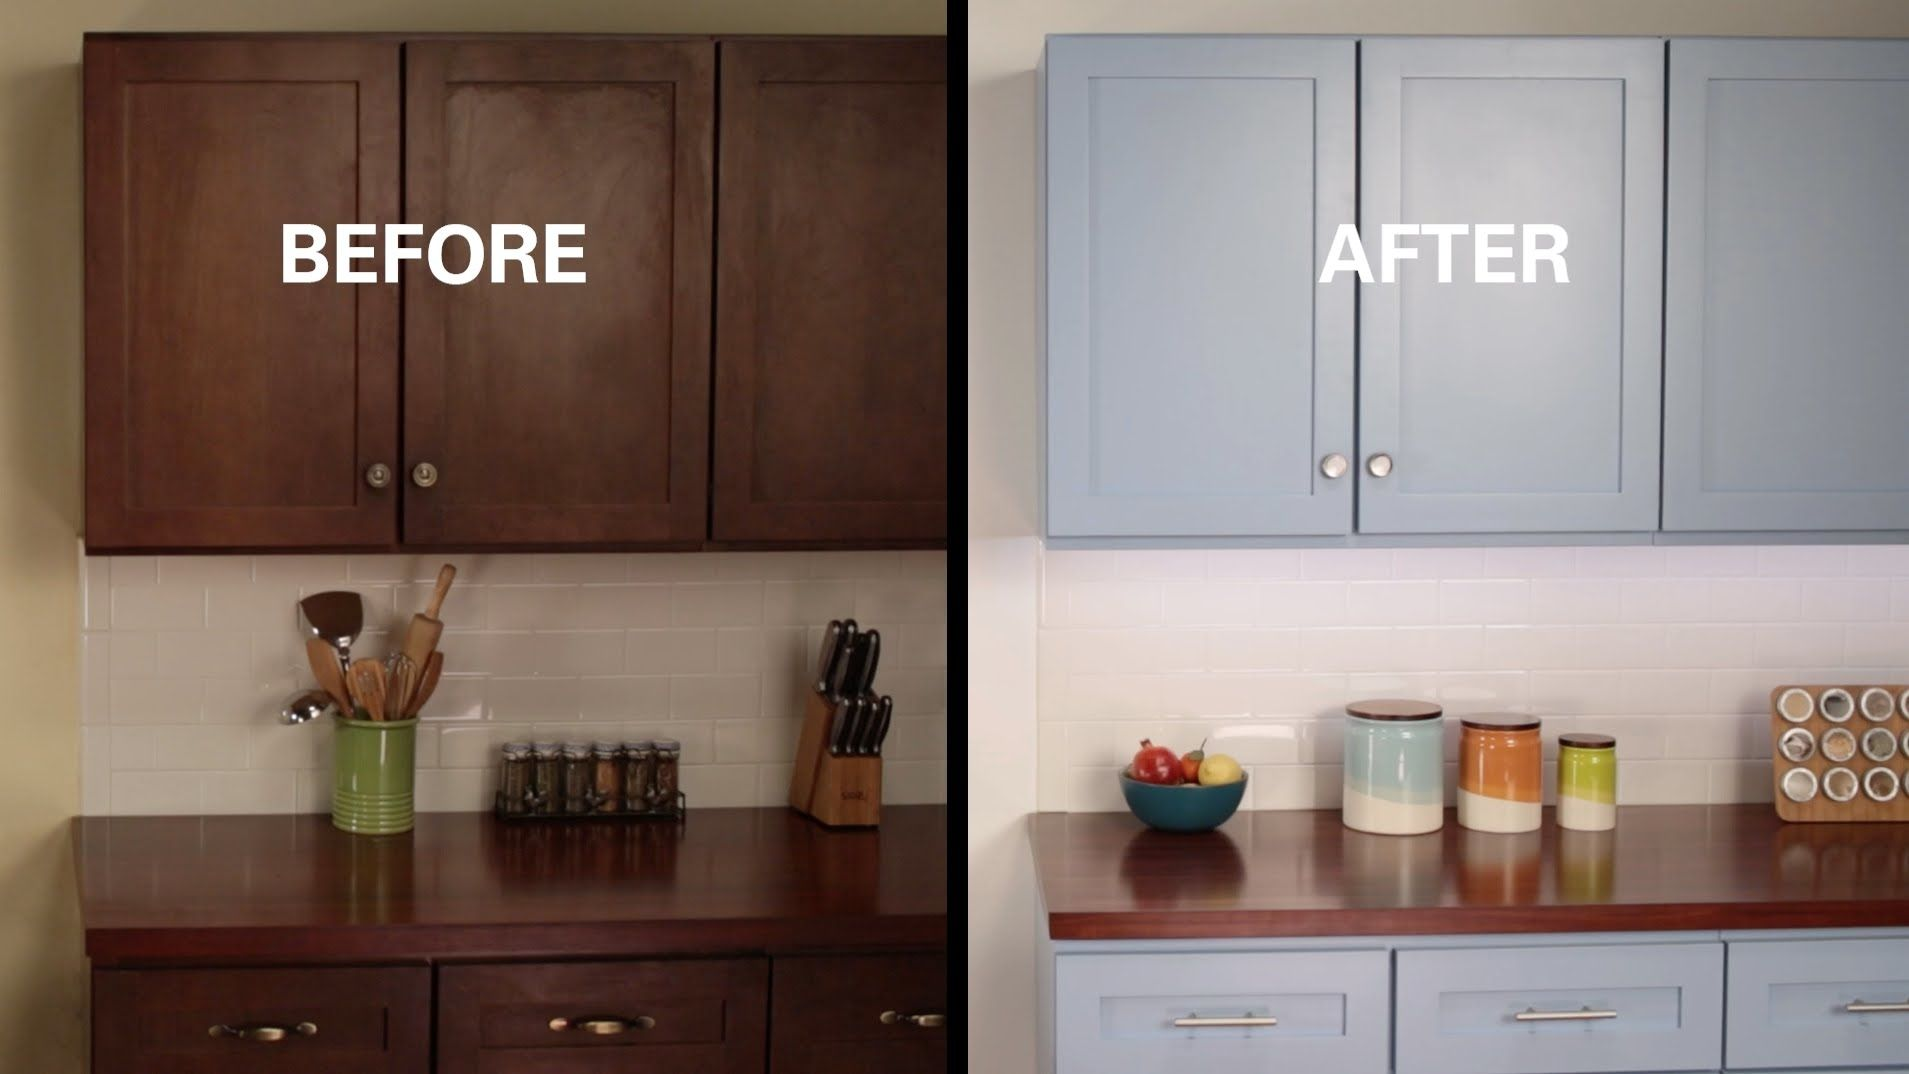 Painting Kitchen Cupboards Spray Paint Kitchen Cupboards Cabinets Painting K Repainting Kitchen Cabinets Refinish Kitchen Cabinets Refurbished Kitchen Cabinets